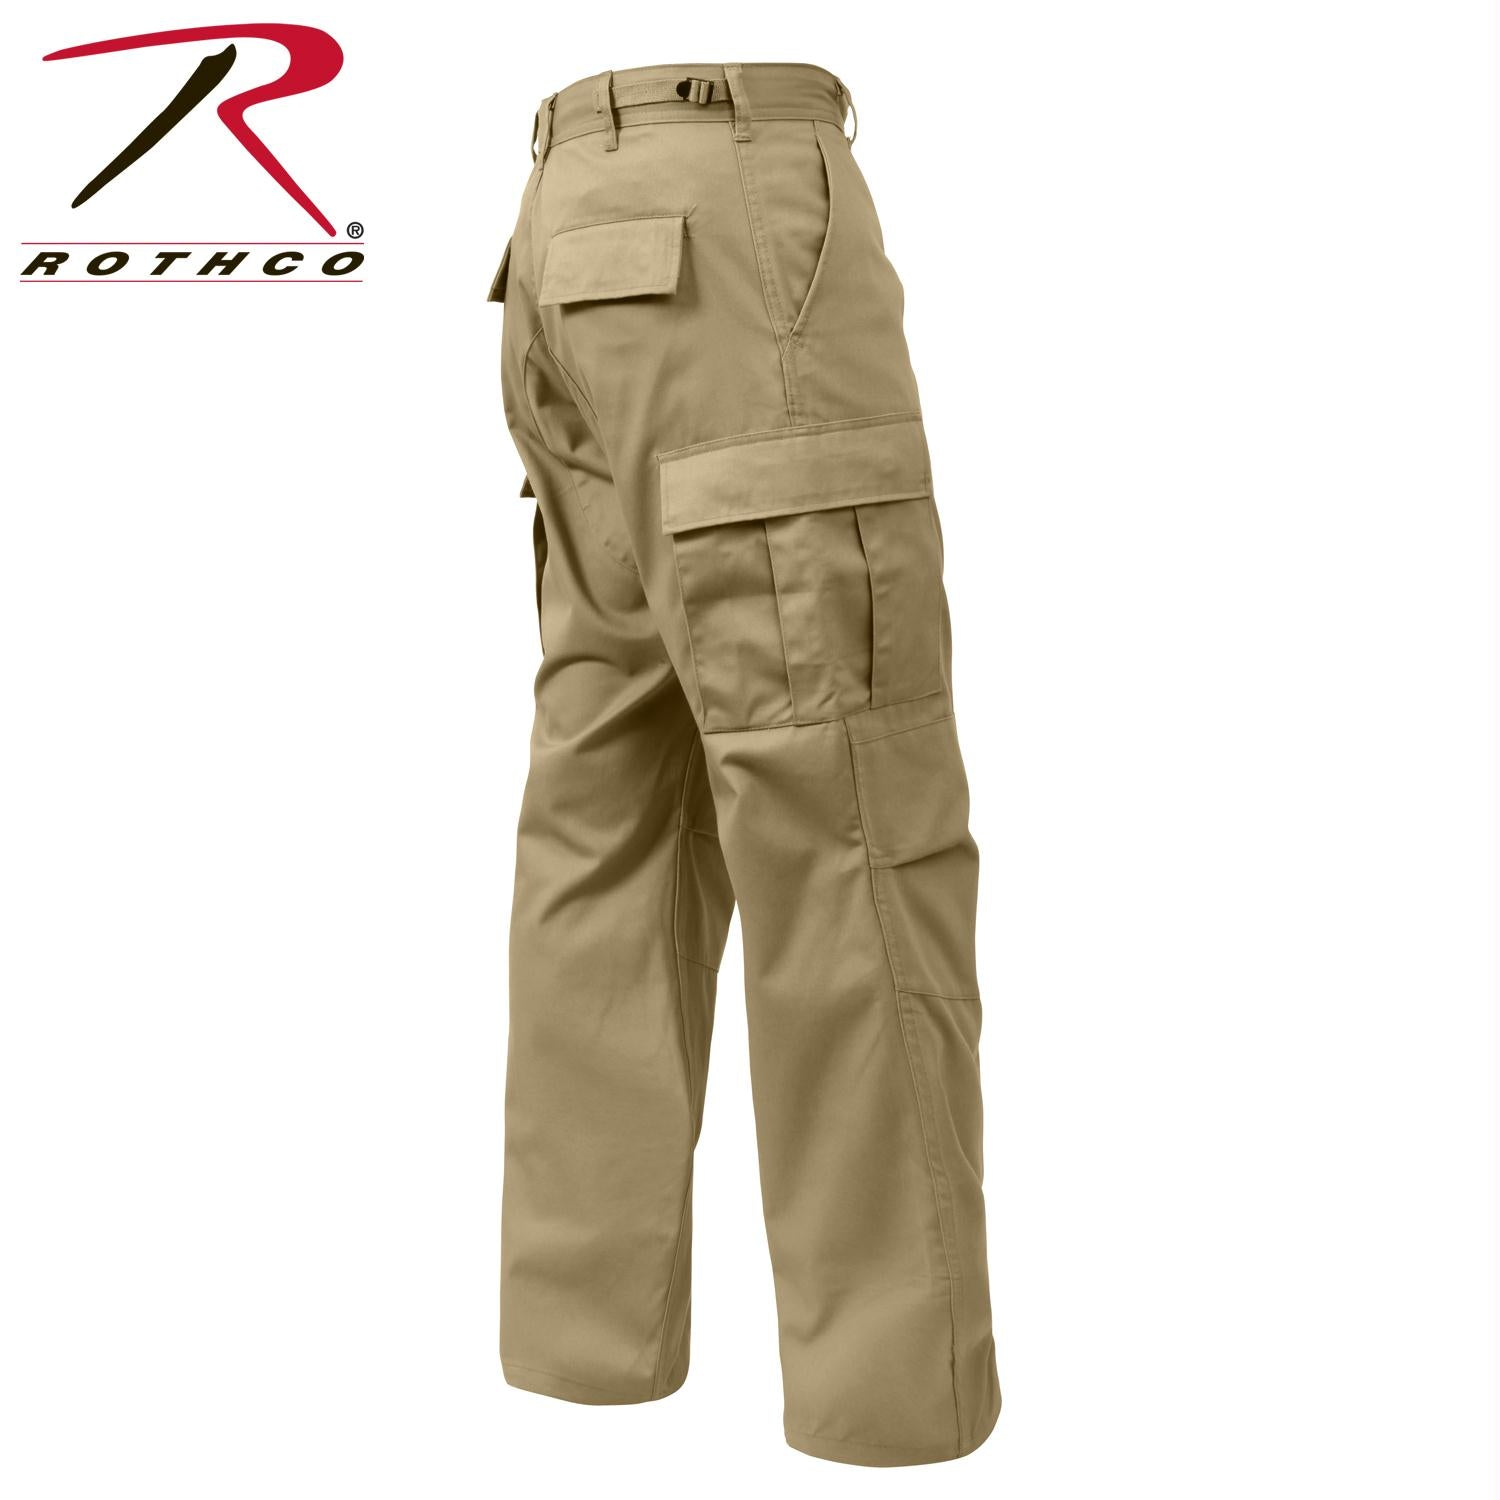 Rothco Relaxed Fit Zipper Fly BDU Pants - Khaki / 2XL